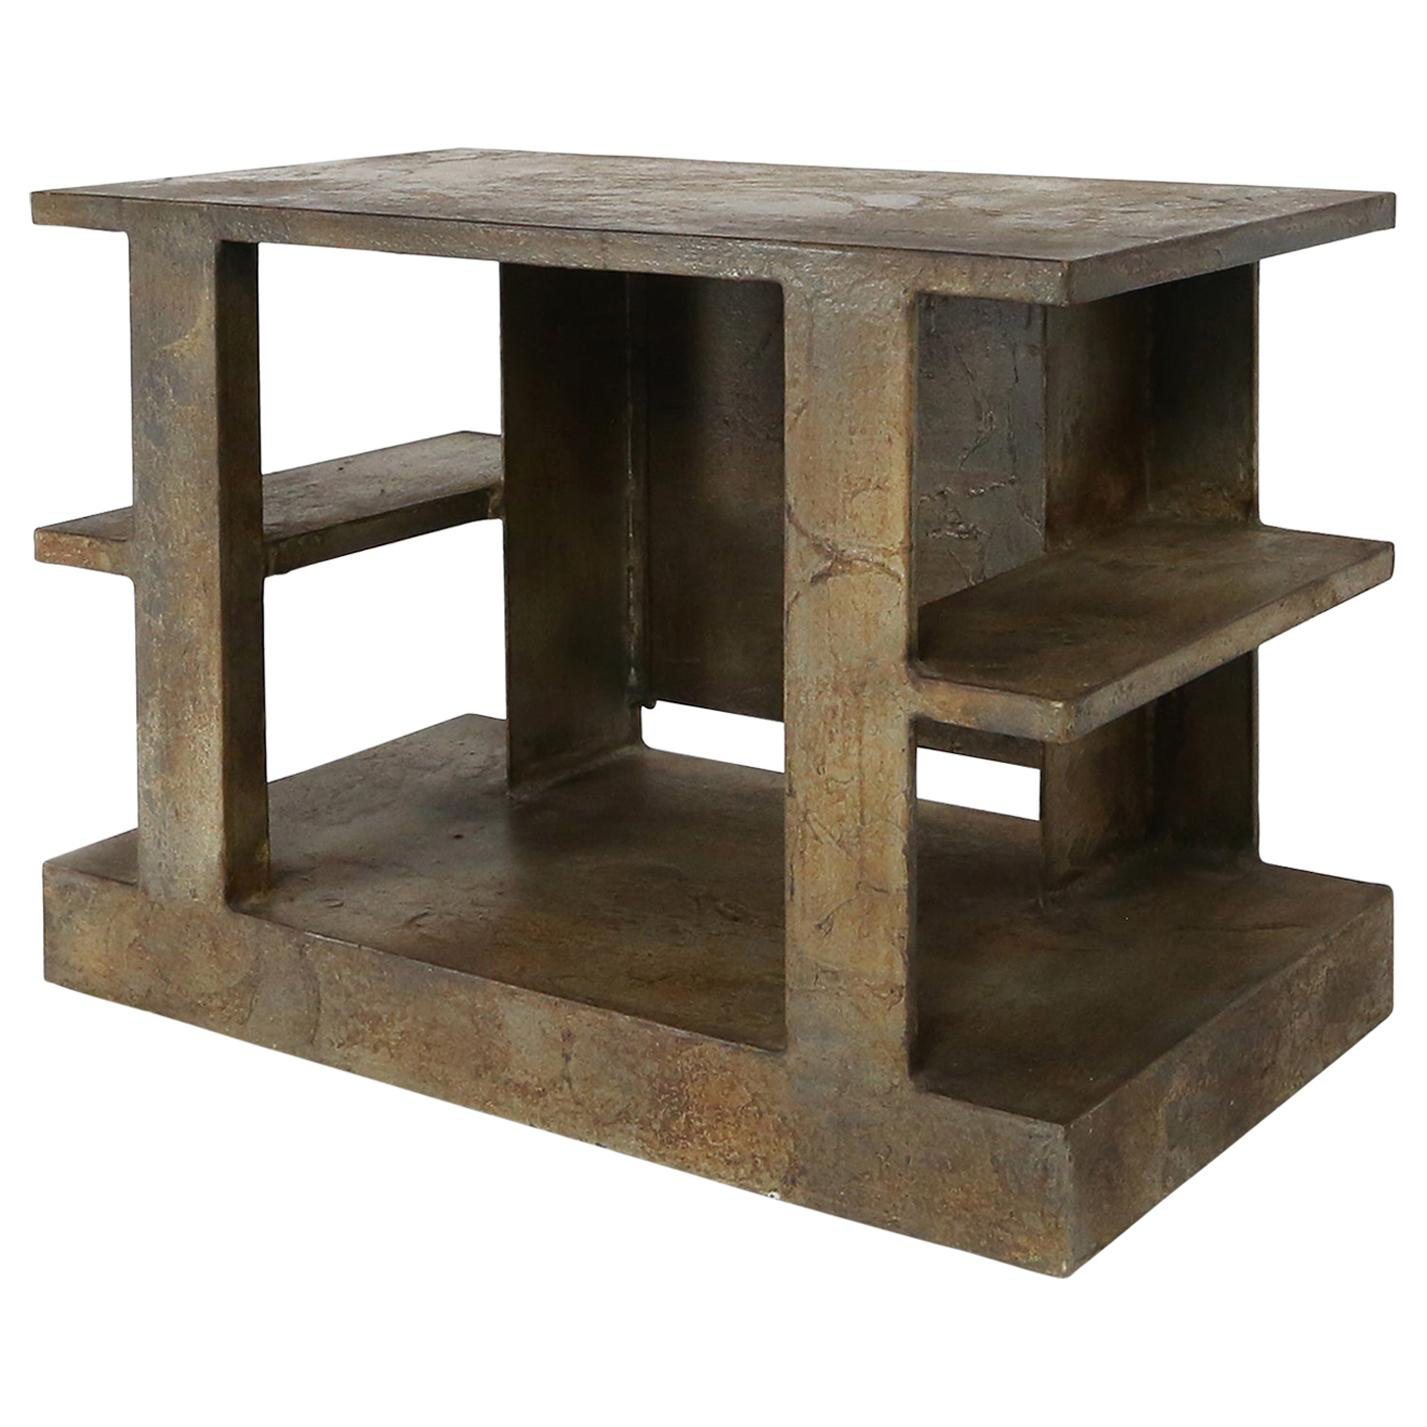 Pia Manu Brutalist Side Table or Television Table, Belgium, 1970s